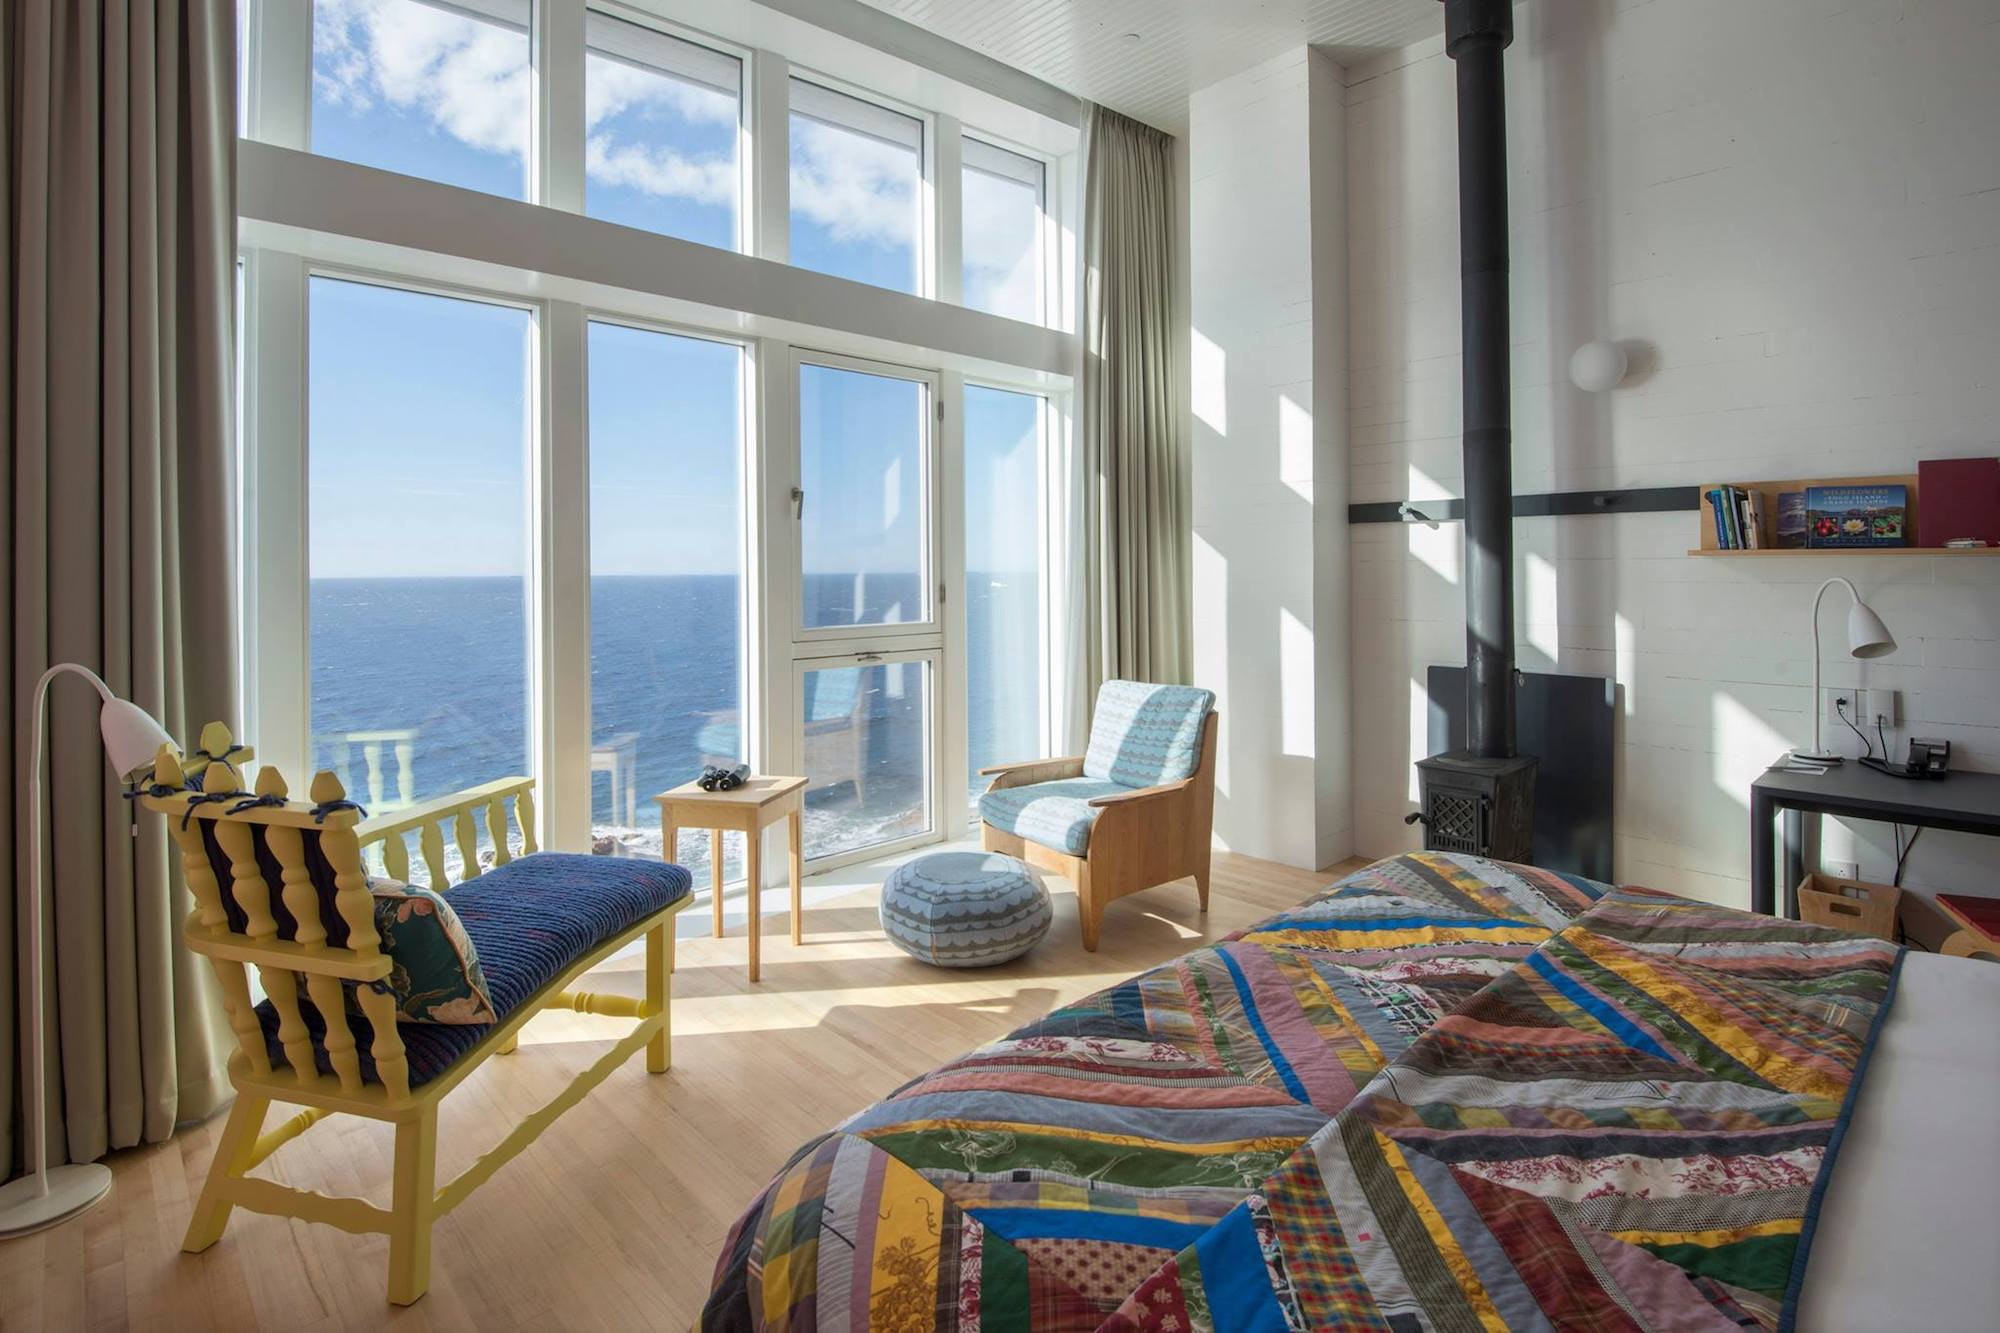 At Fogo Island Inn, contemporary fireplaces keep the 29 guest rooms, lobby, restaurant, and library warm.